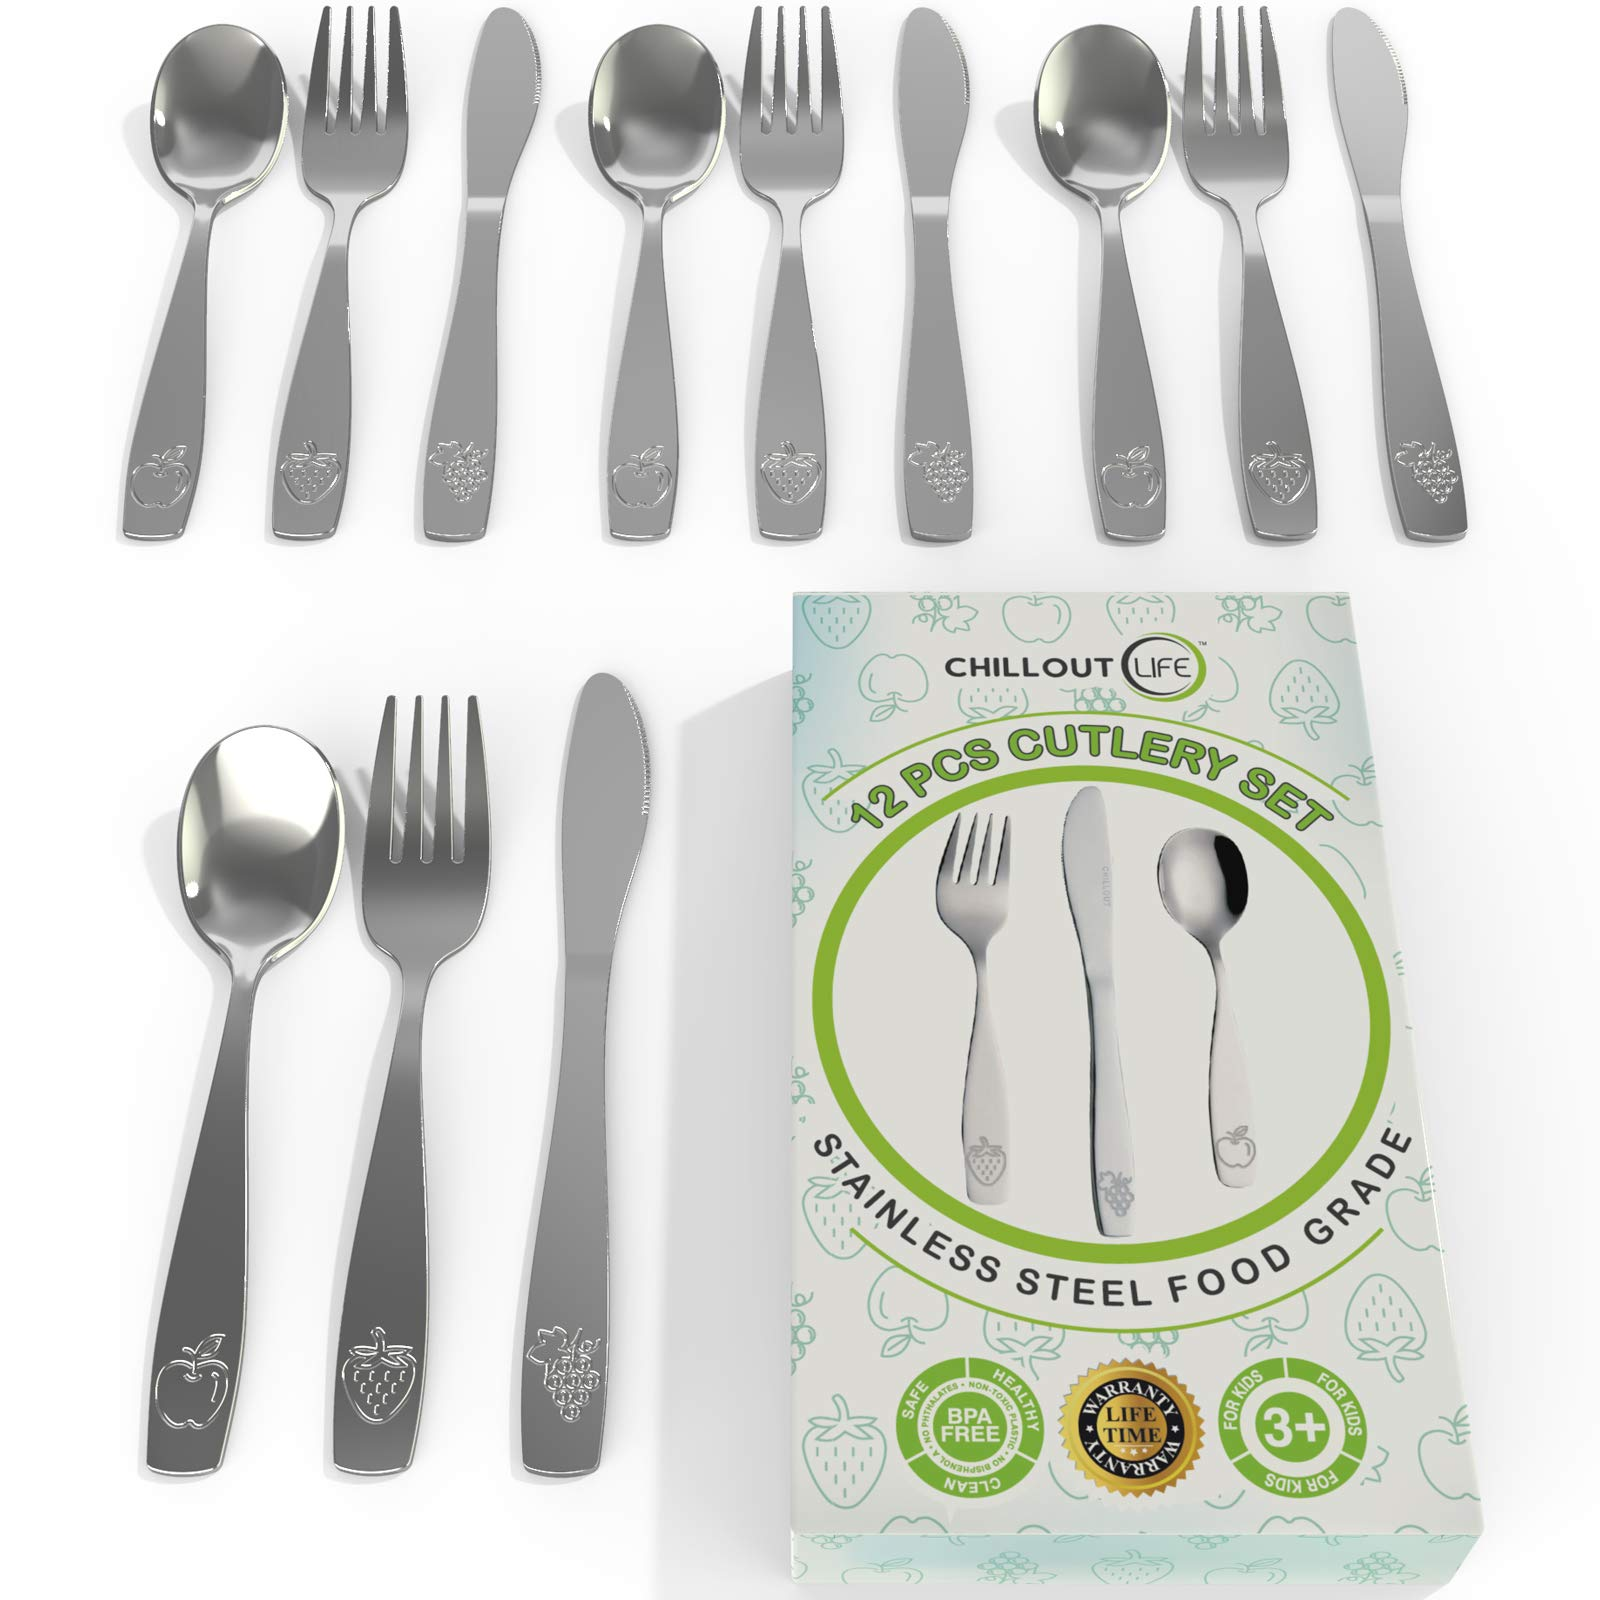 12 Piece Stainless Steel Kids Silverware Set   Child and Toddler Safe Flatware   Kids Utensil Set   Metal Kids Cutlery Set Includes 4 Small Kids Spoons, 4 Forks & 4 Knives by CHILLOUT LIFE